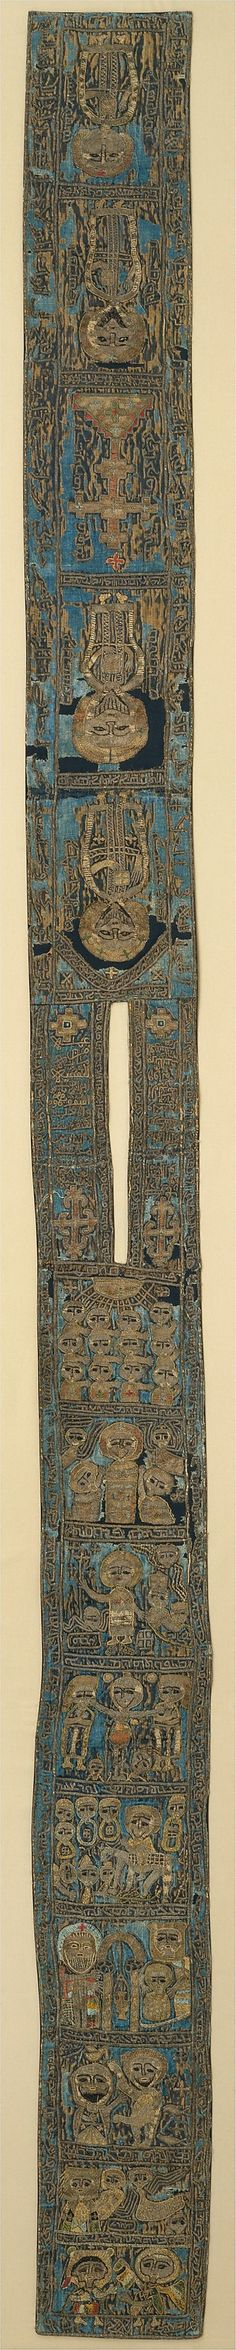 16th c. Syrian silk backed with linen batrashil (Syriac church liturgical vestment) with scenes from the Gospels and Arabic and Syriac inscriptions, made in the style of 13th and 14th c. batrashil -  Met Museum 14.137